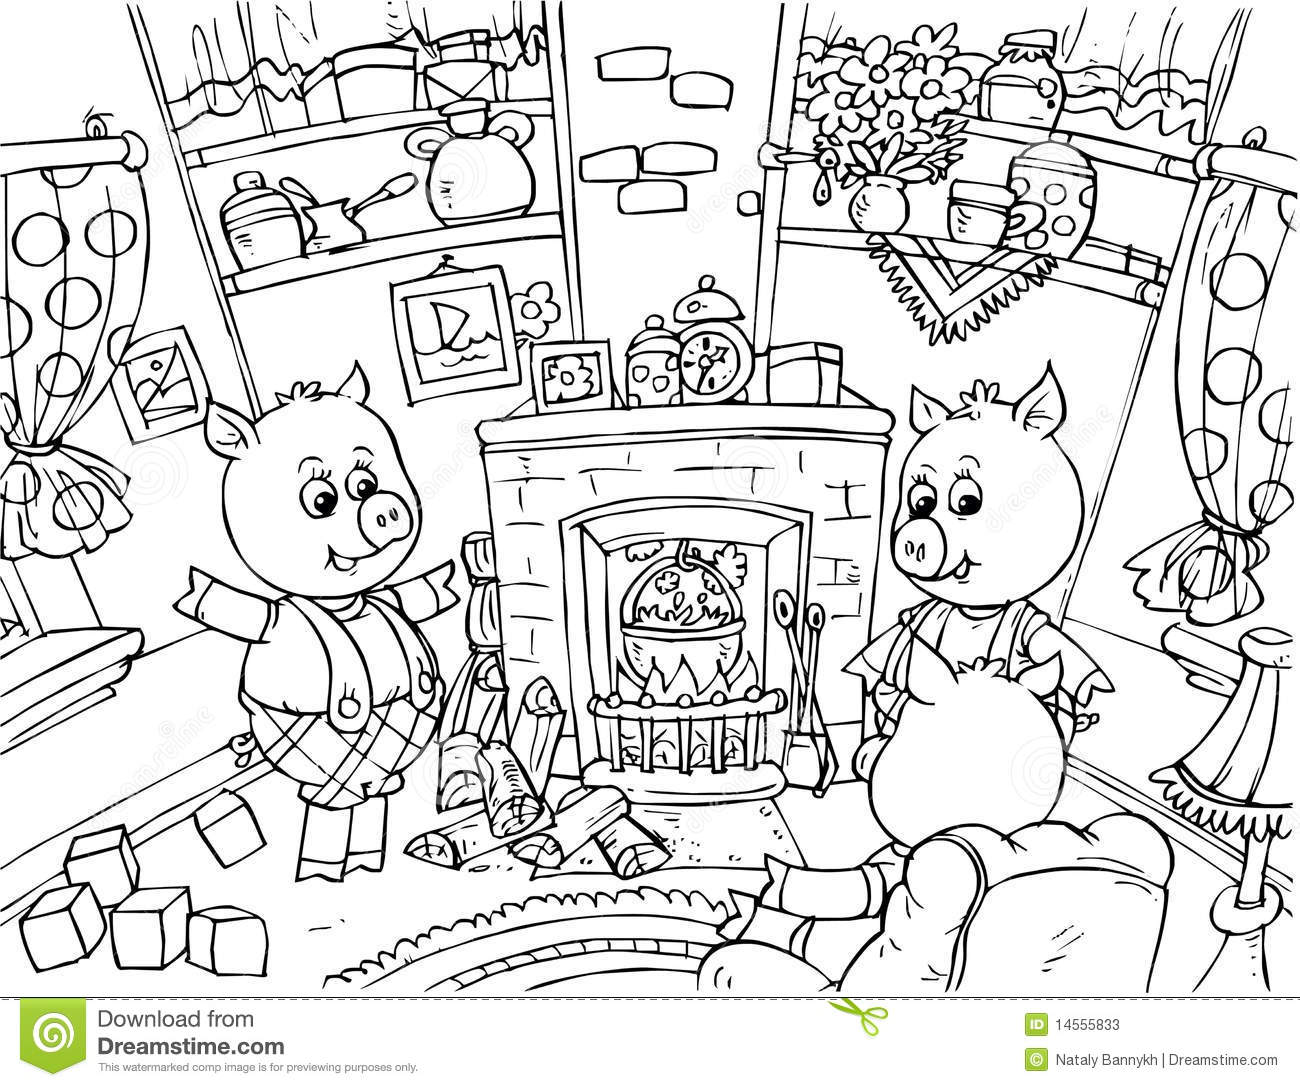 3 little pigs coloring pages free - three little pigs stock illustration illustration of